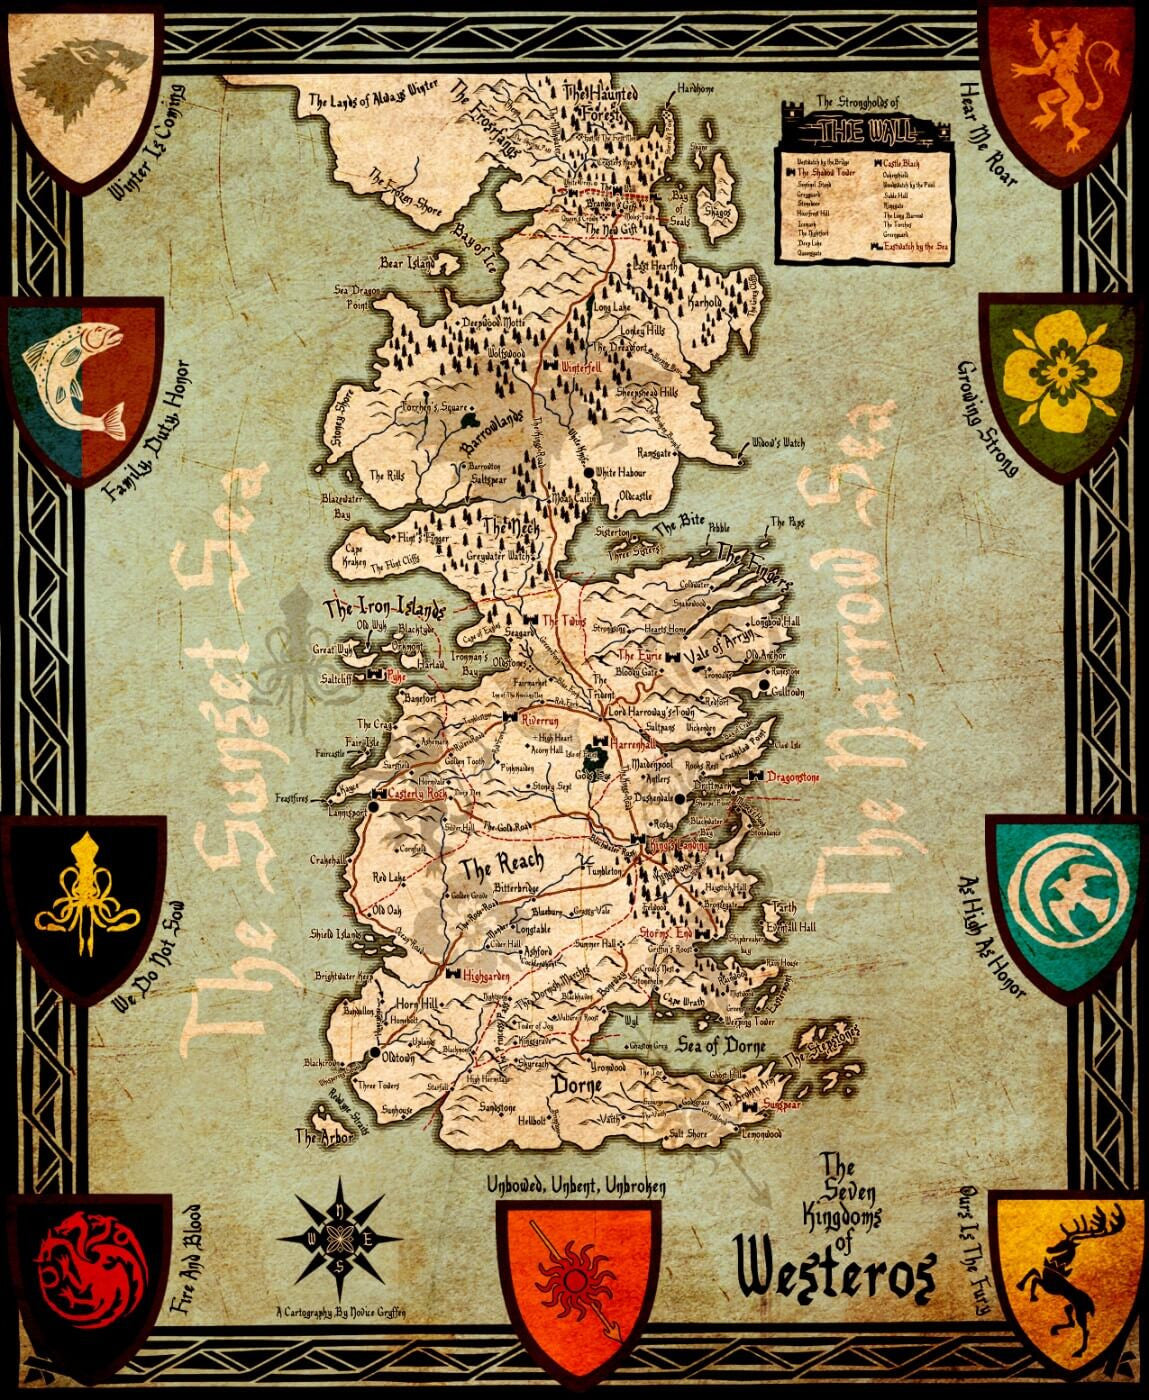 art from game of thrones  seven kingdoms of westeros map by  - art from game of thrones  seven kingdoms of westeros map by marianneddington  buy posters frames canvas  digital art prints